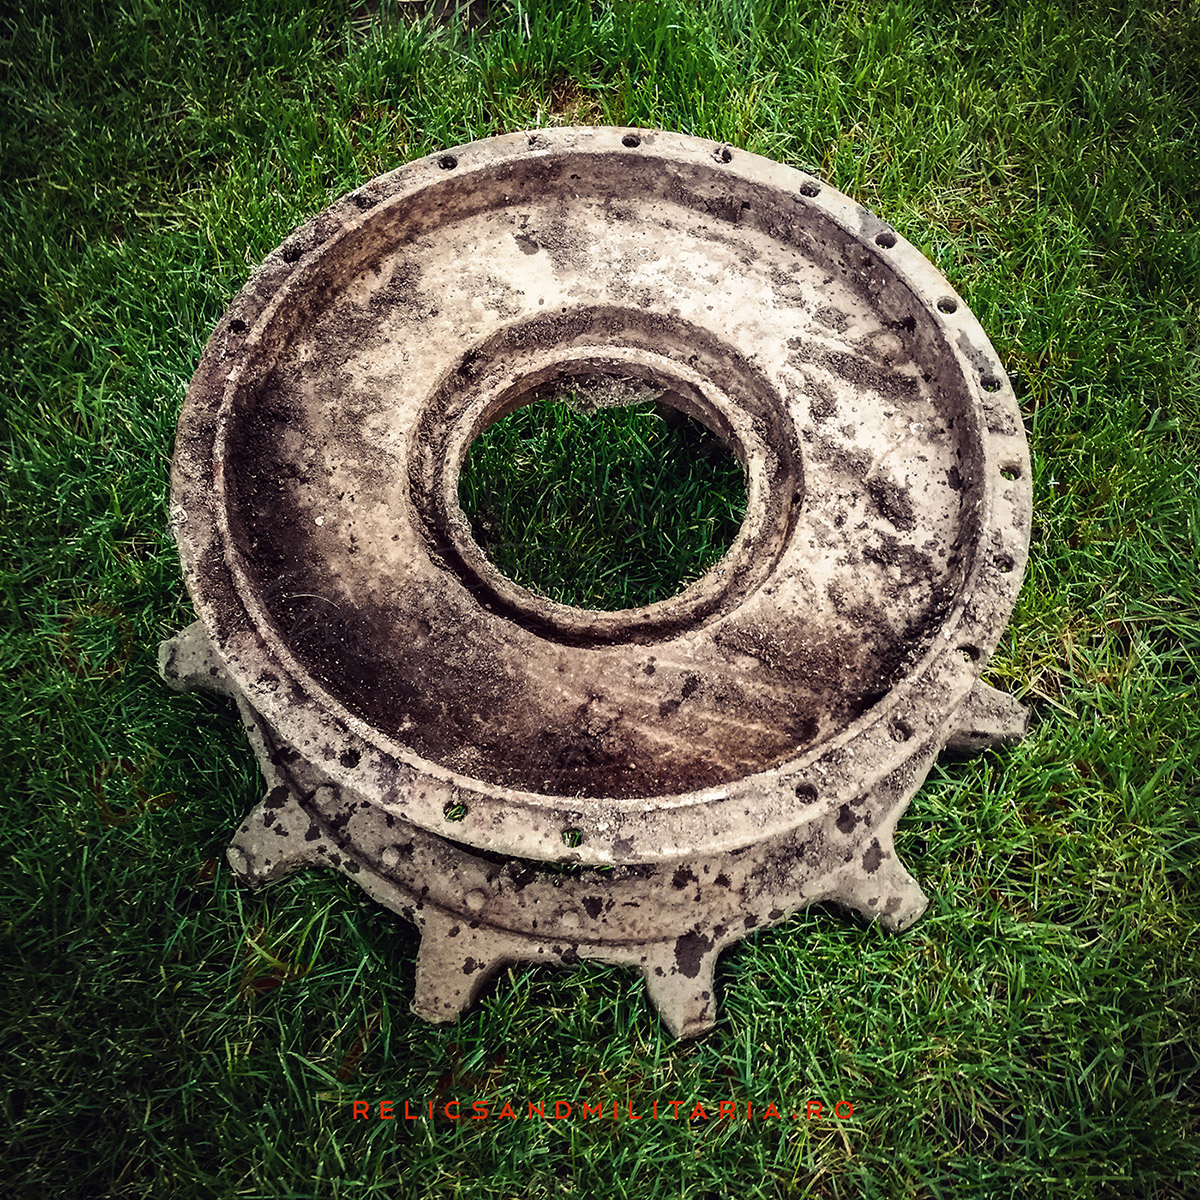 Raupenschlepper Ost sprocket wheel